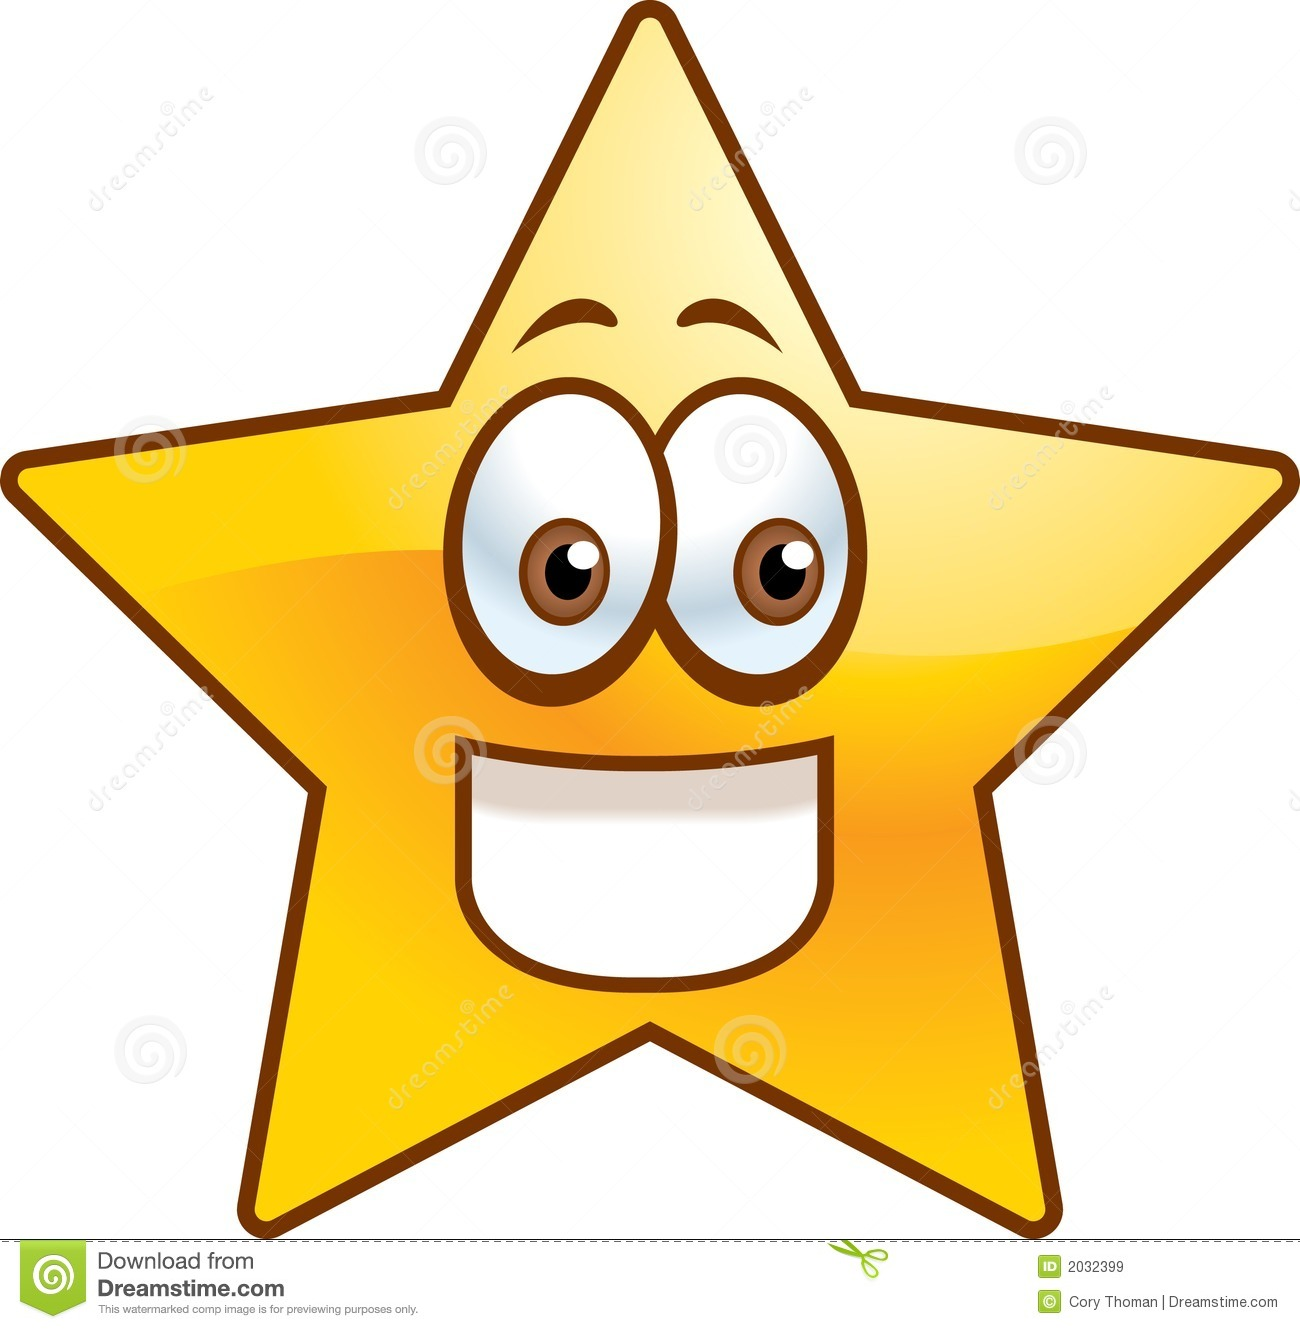 1300x1329 Smiling With Arms Star Clipart